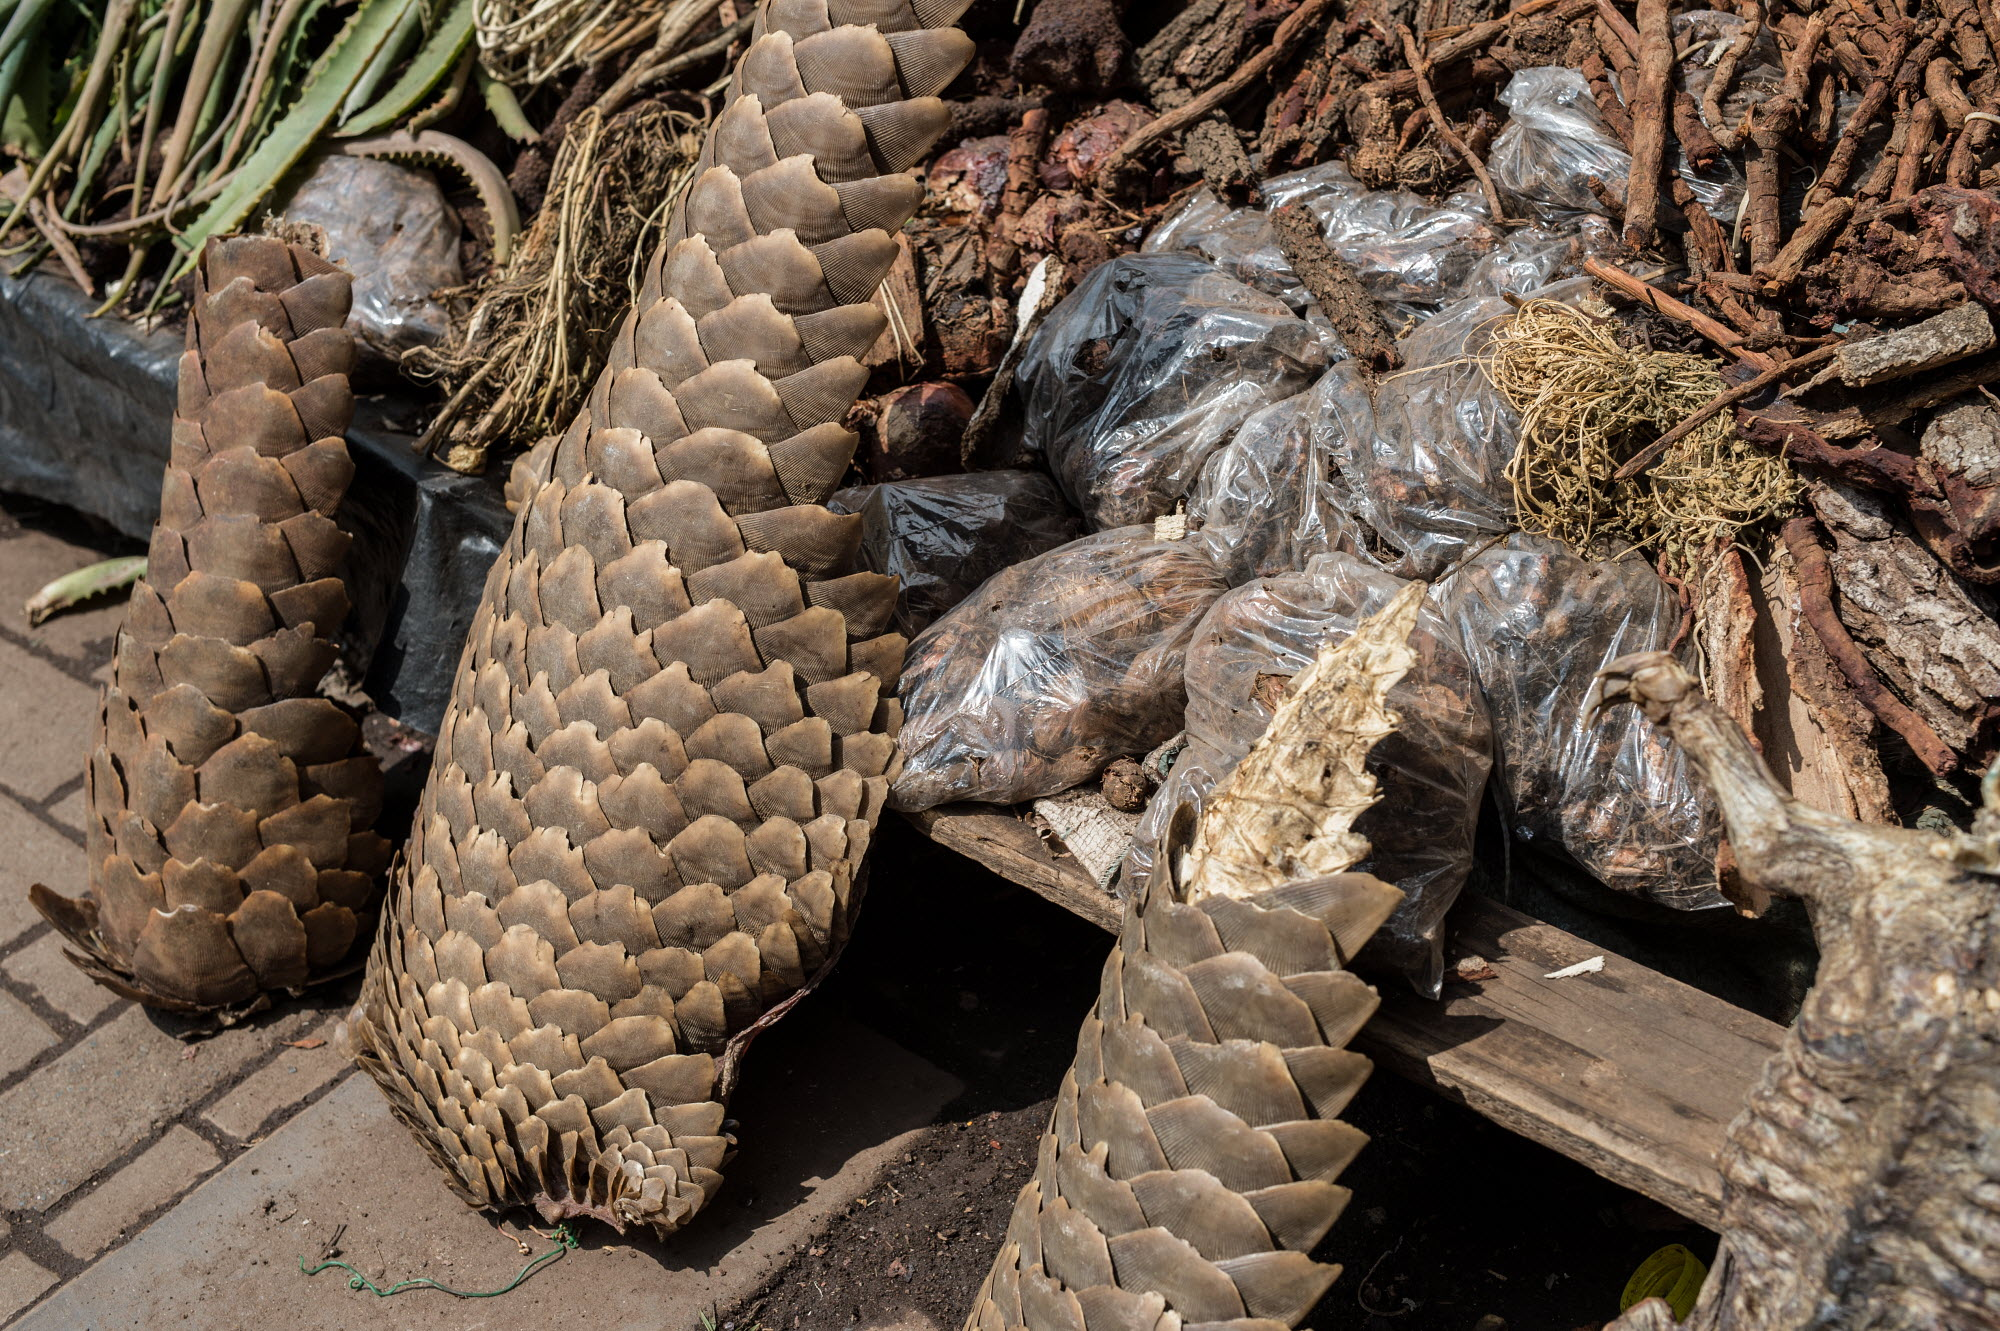 Muti market in Africa selling animal parts.  Photo Credit: Jo-Anne McArthur/WeAnimals/WildScreen Exchange.